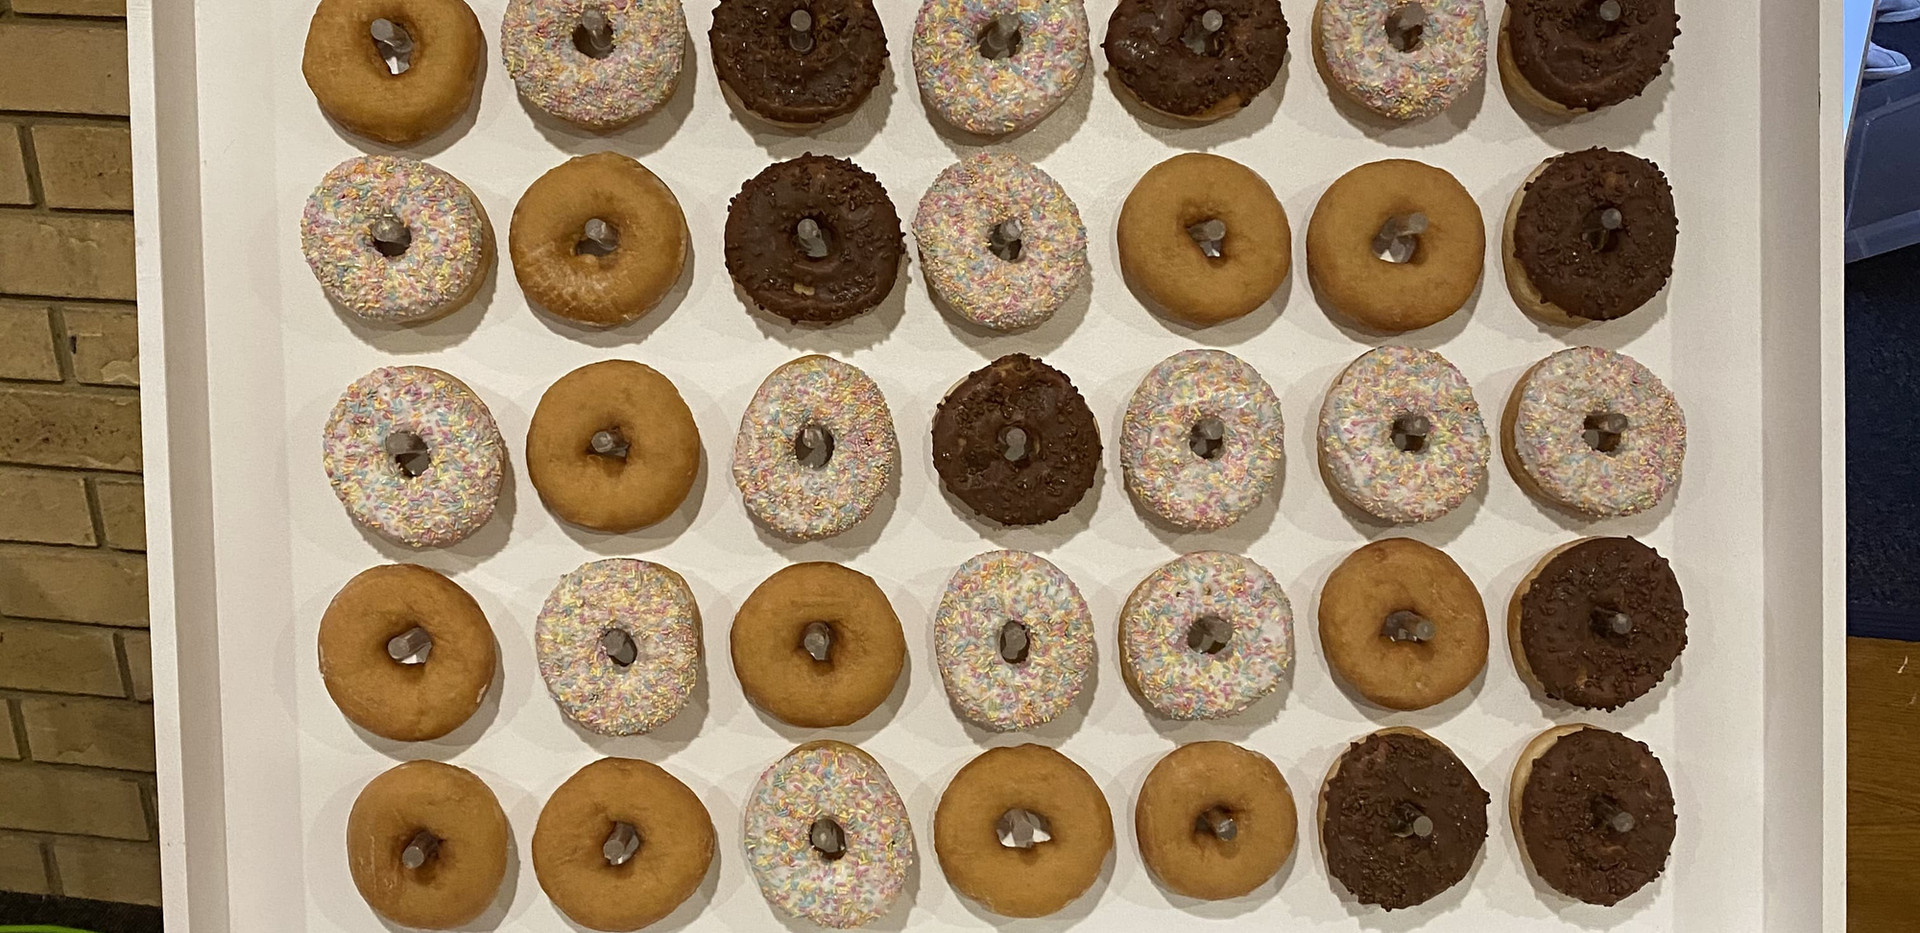 Doughnut Wall for hire